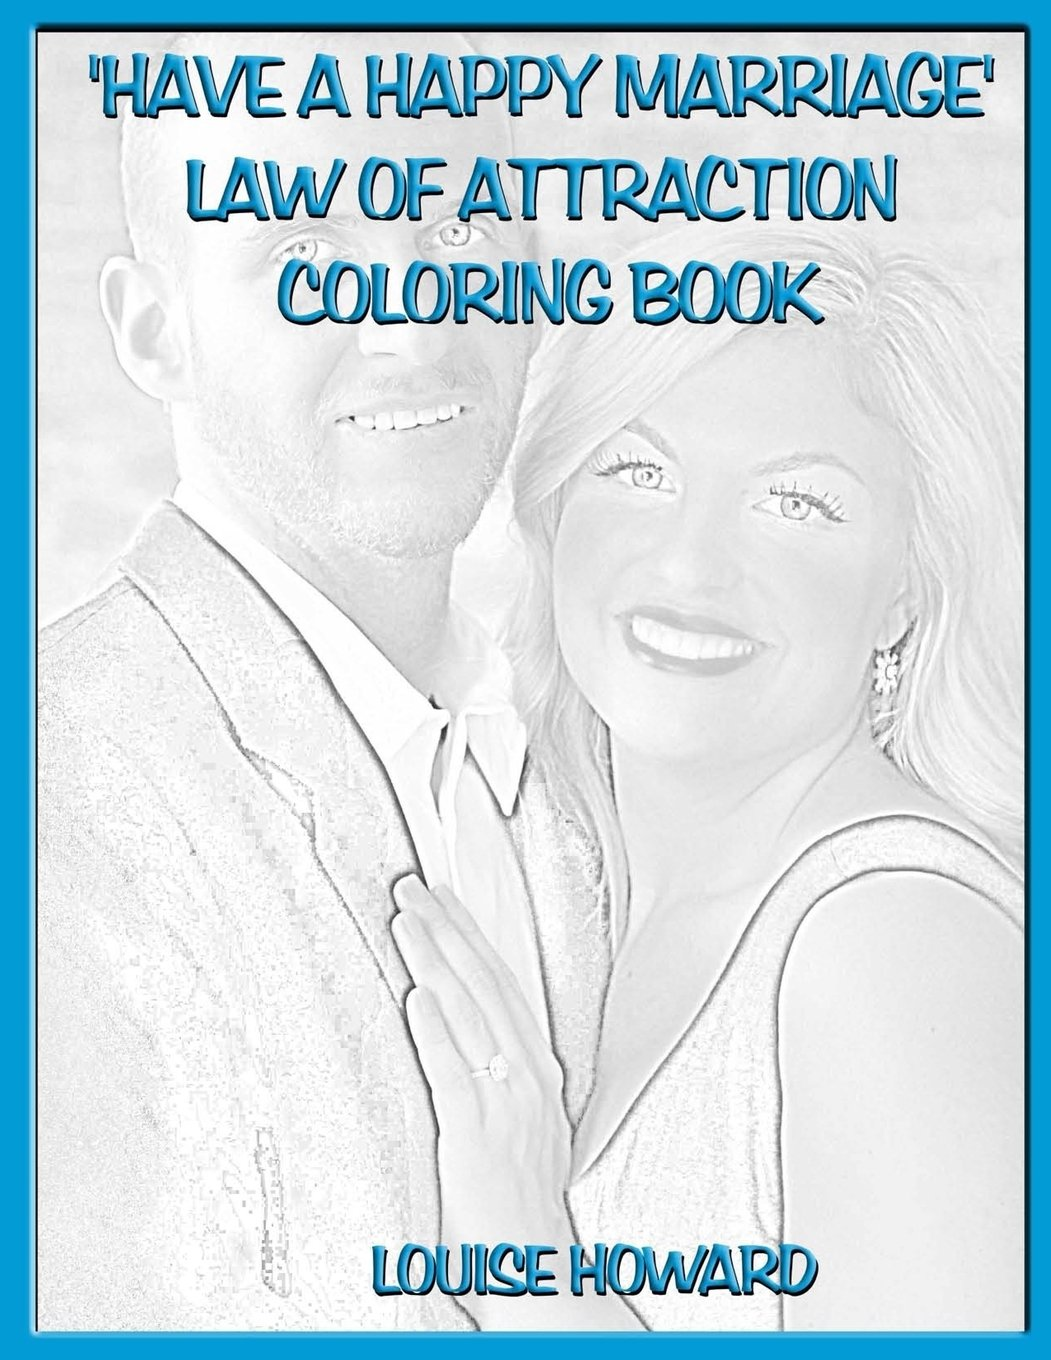 Law of attraction and marriage